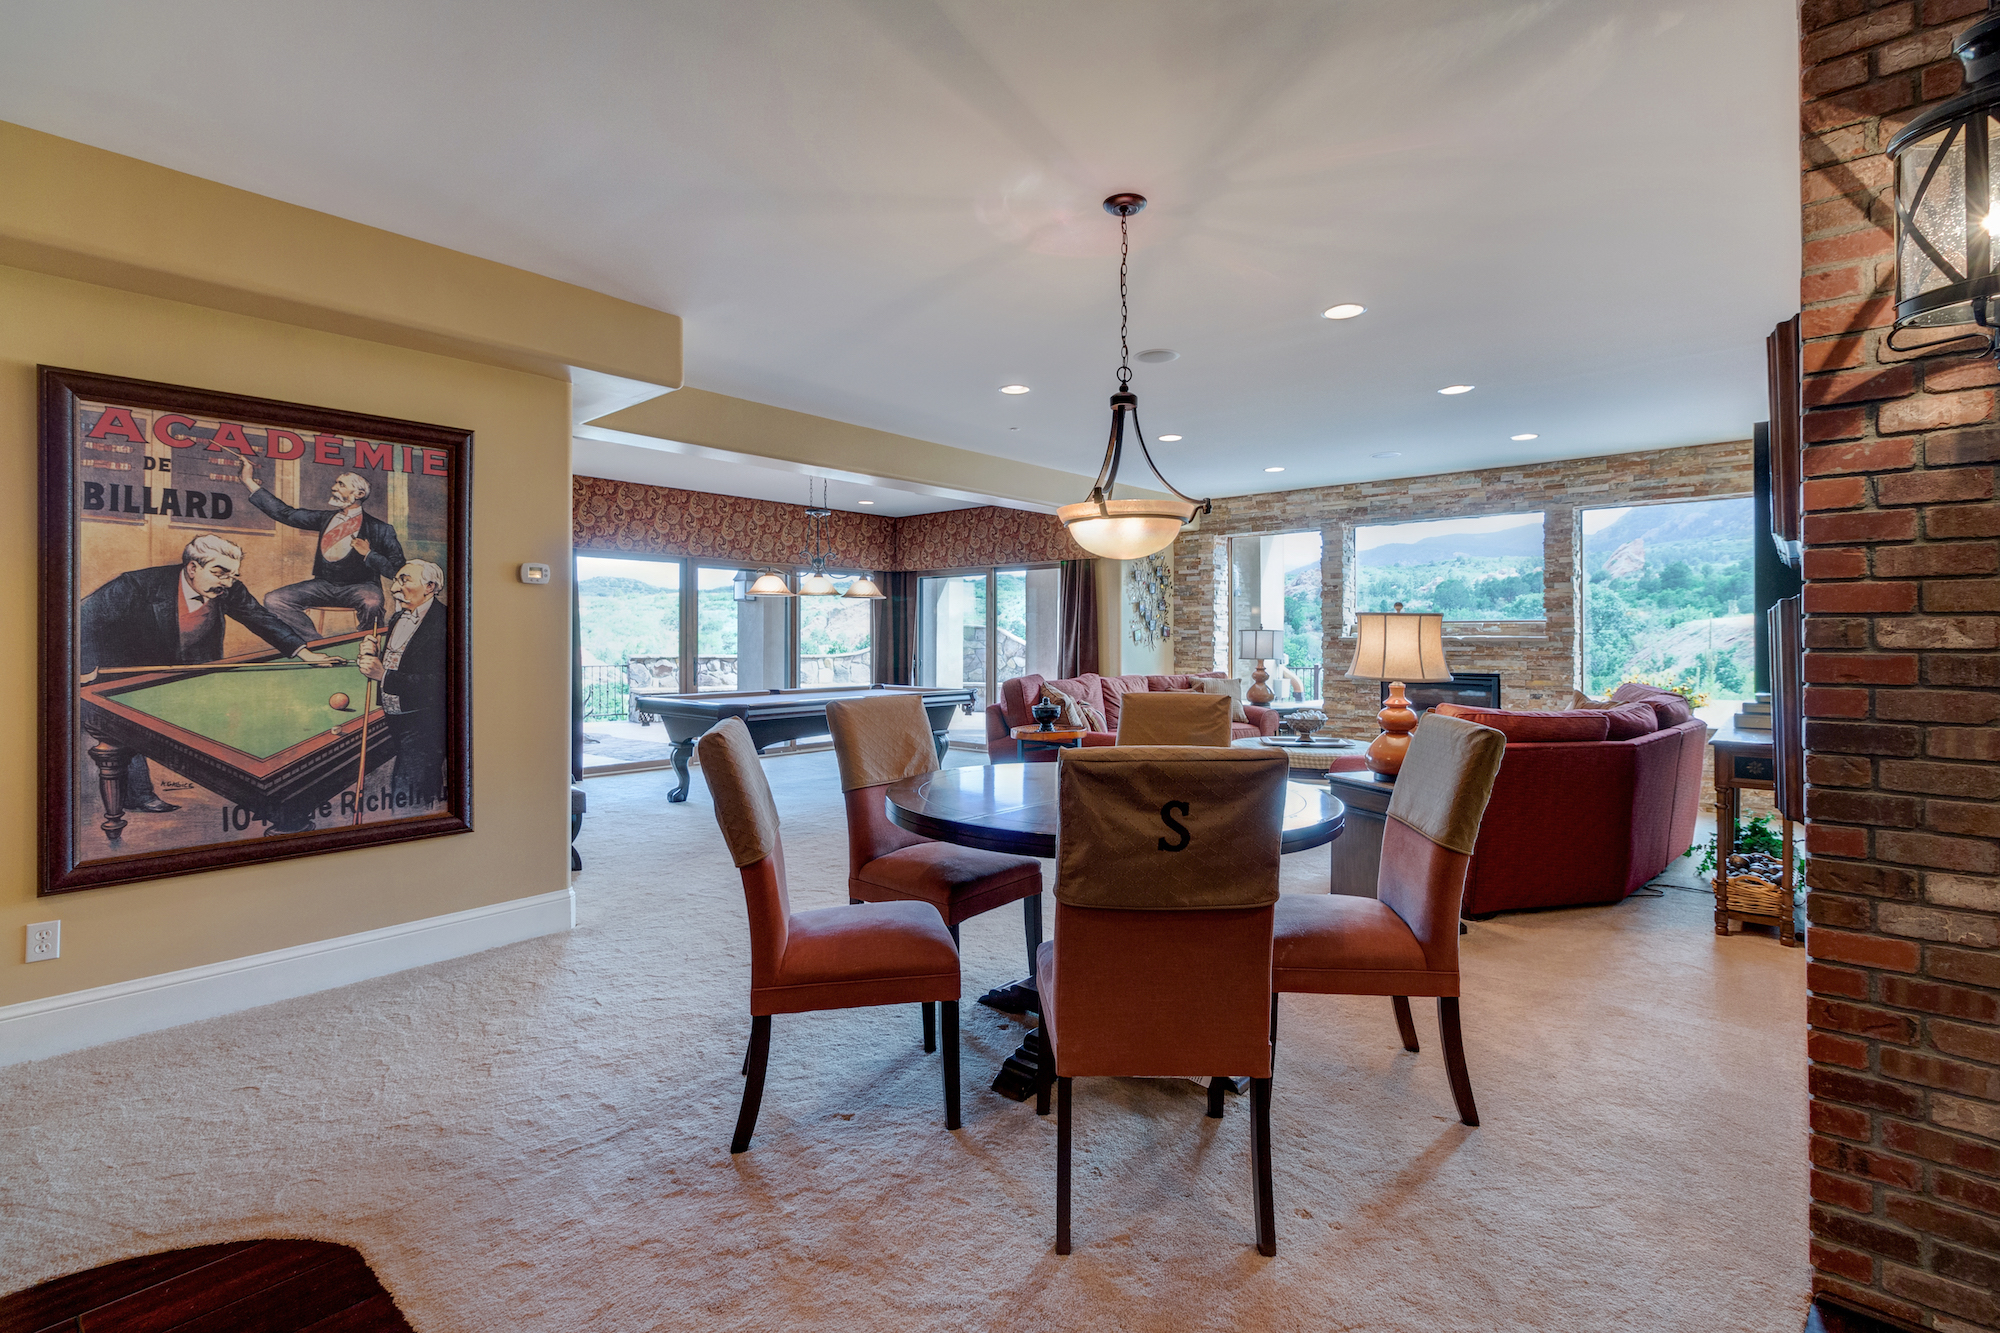 022-Family room w pool table area in distance.jpg